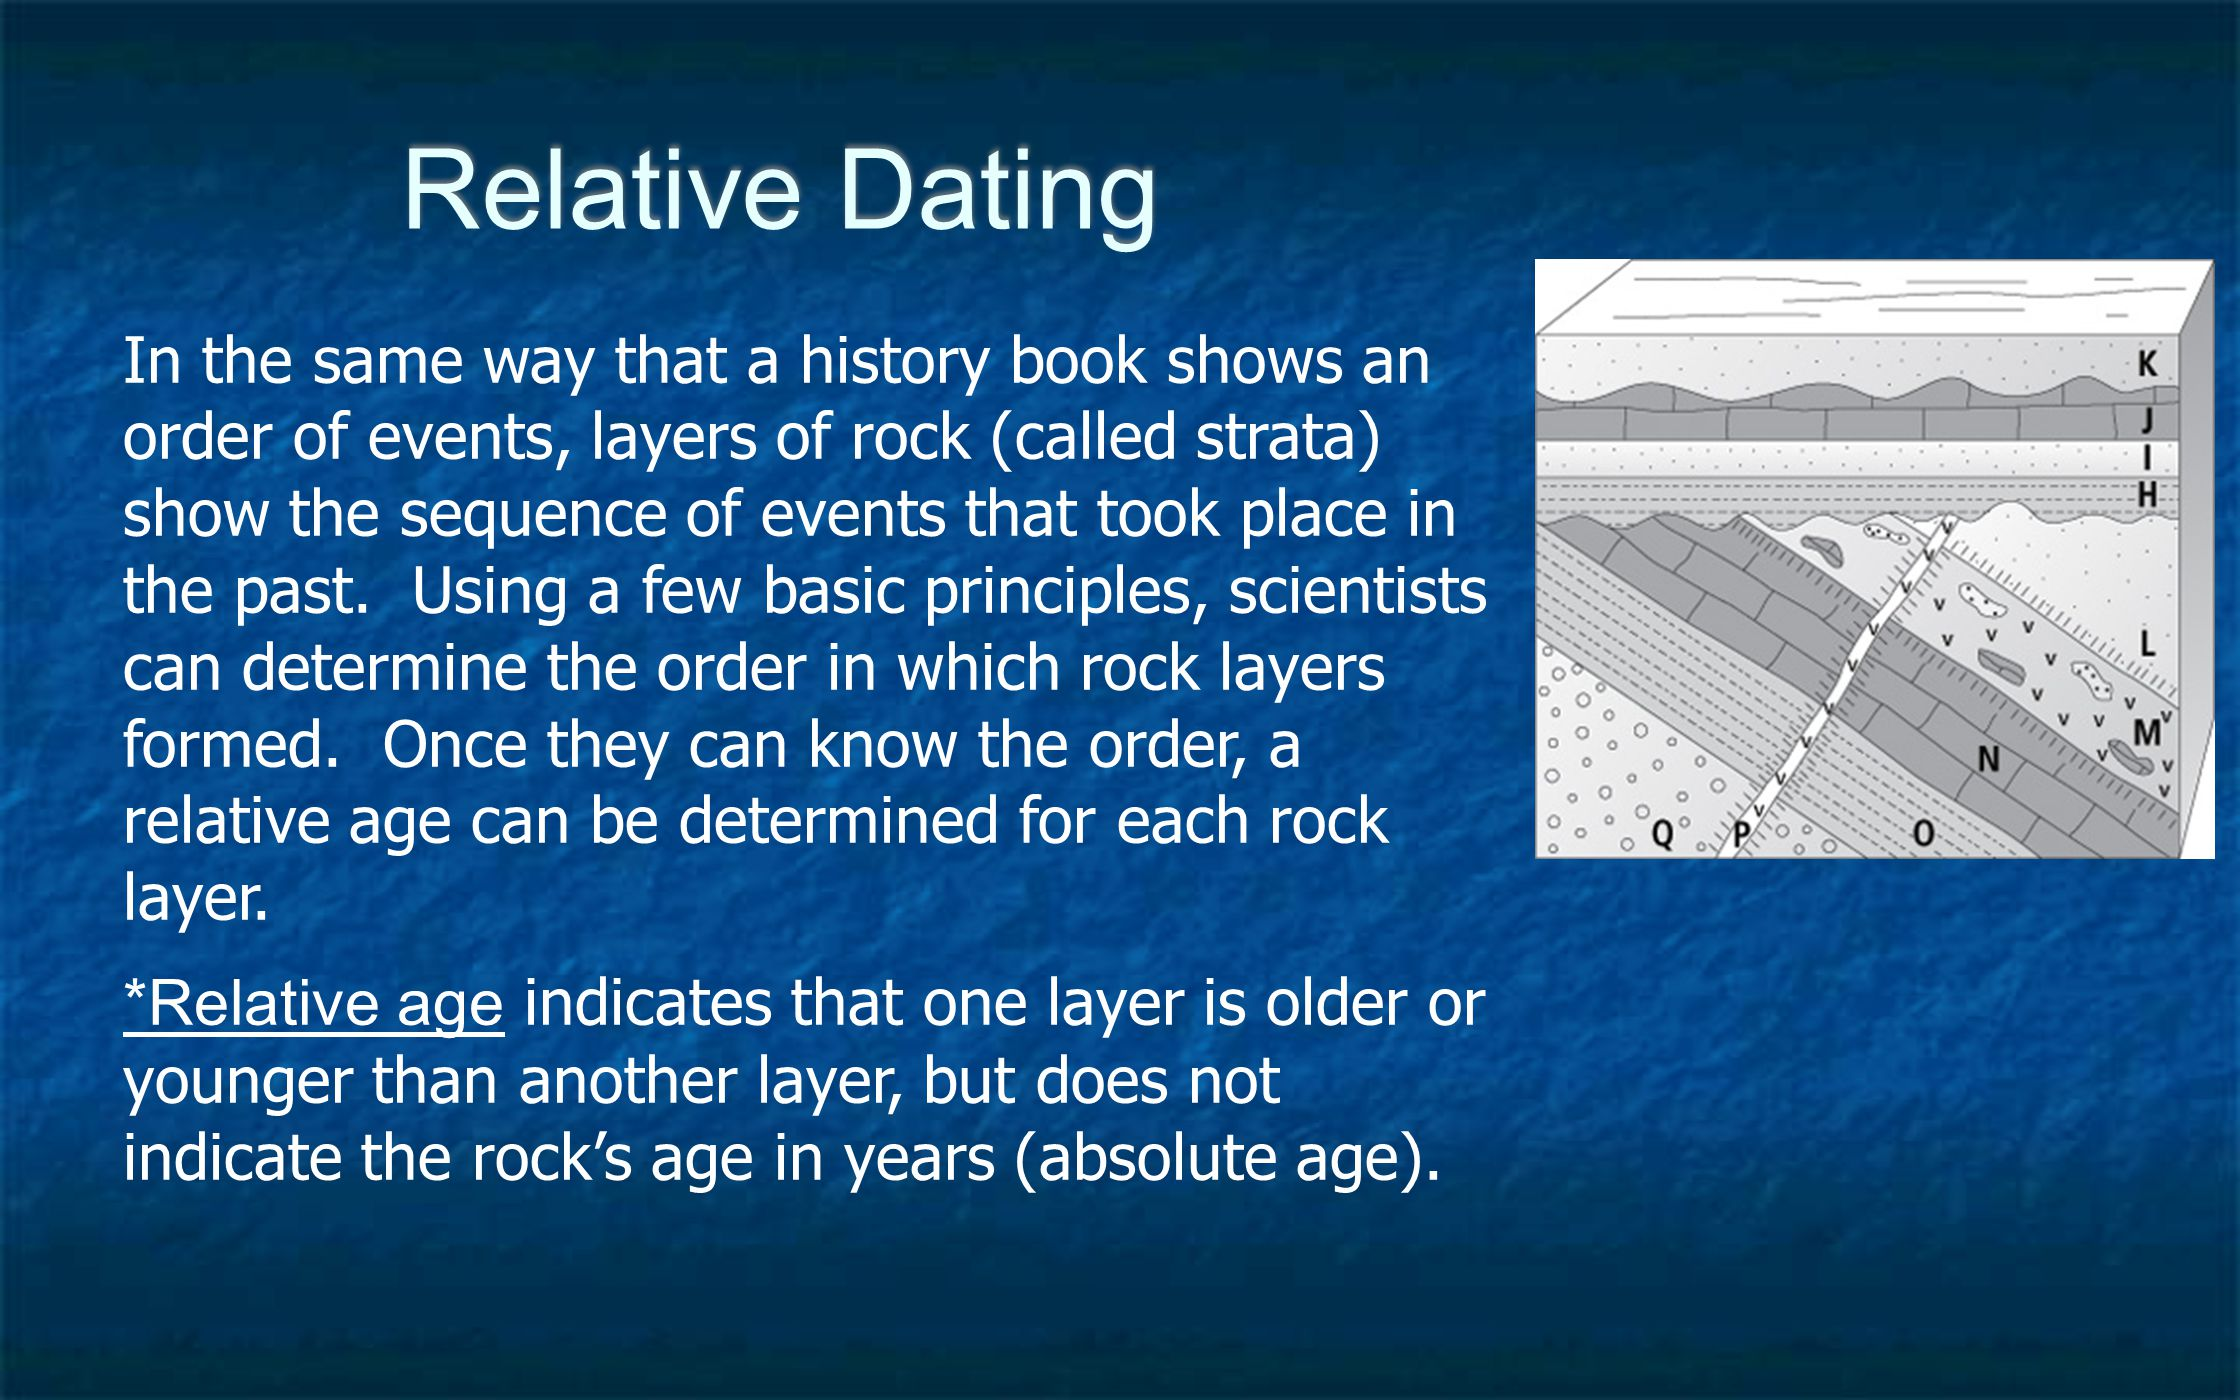 Relative Dating In the same way that a history book shows an order of events, layers of rock (called strata) show the sequence of events that took pla